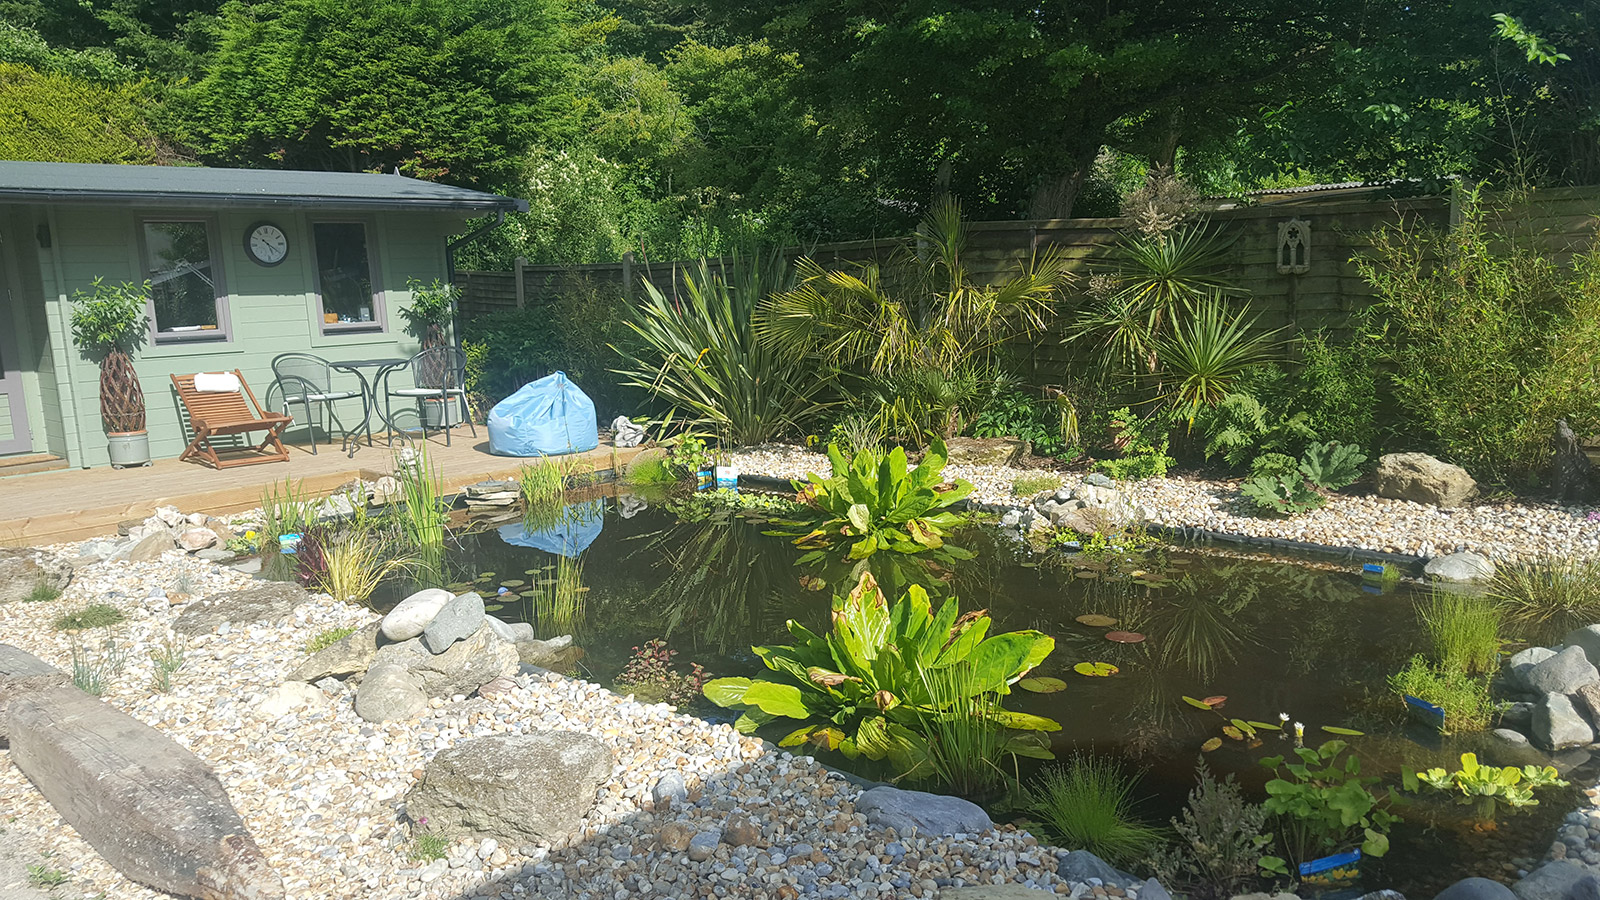 Wonderful wildlife pond and decking. Testimonial for Shakespeare's Landscape from a customer